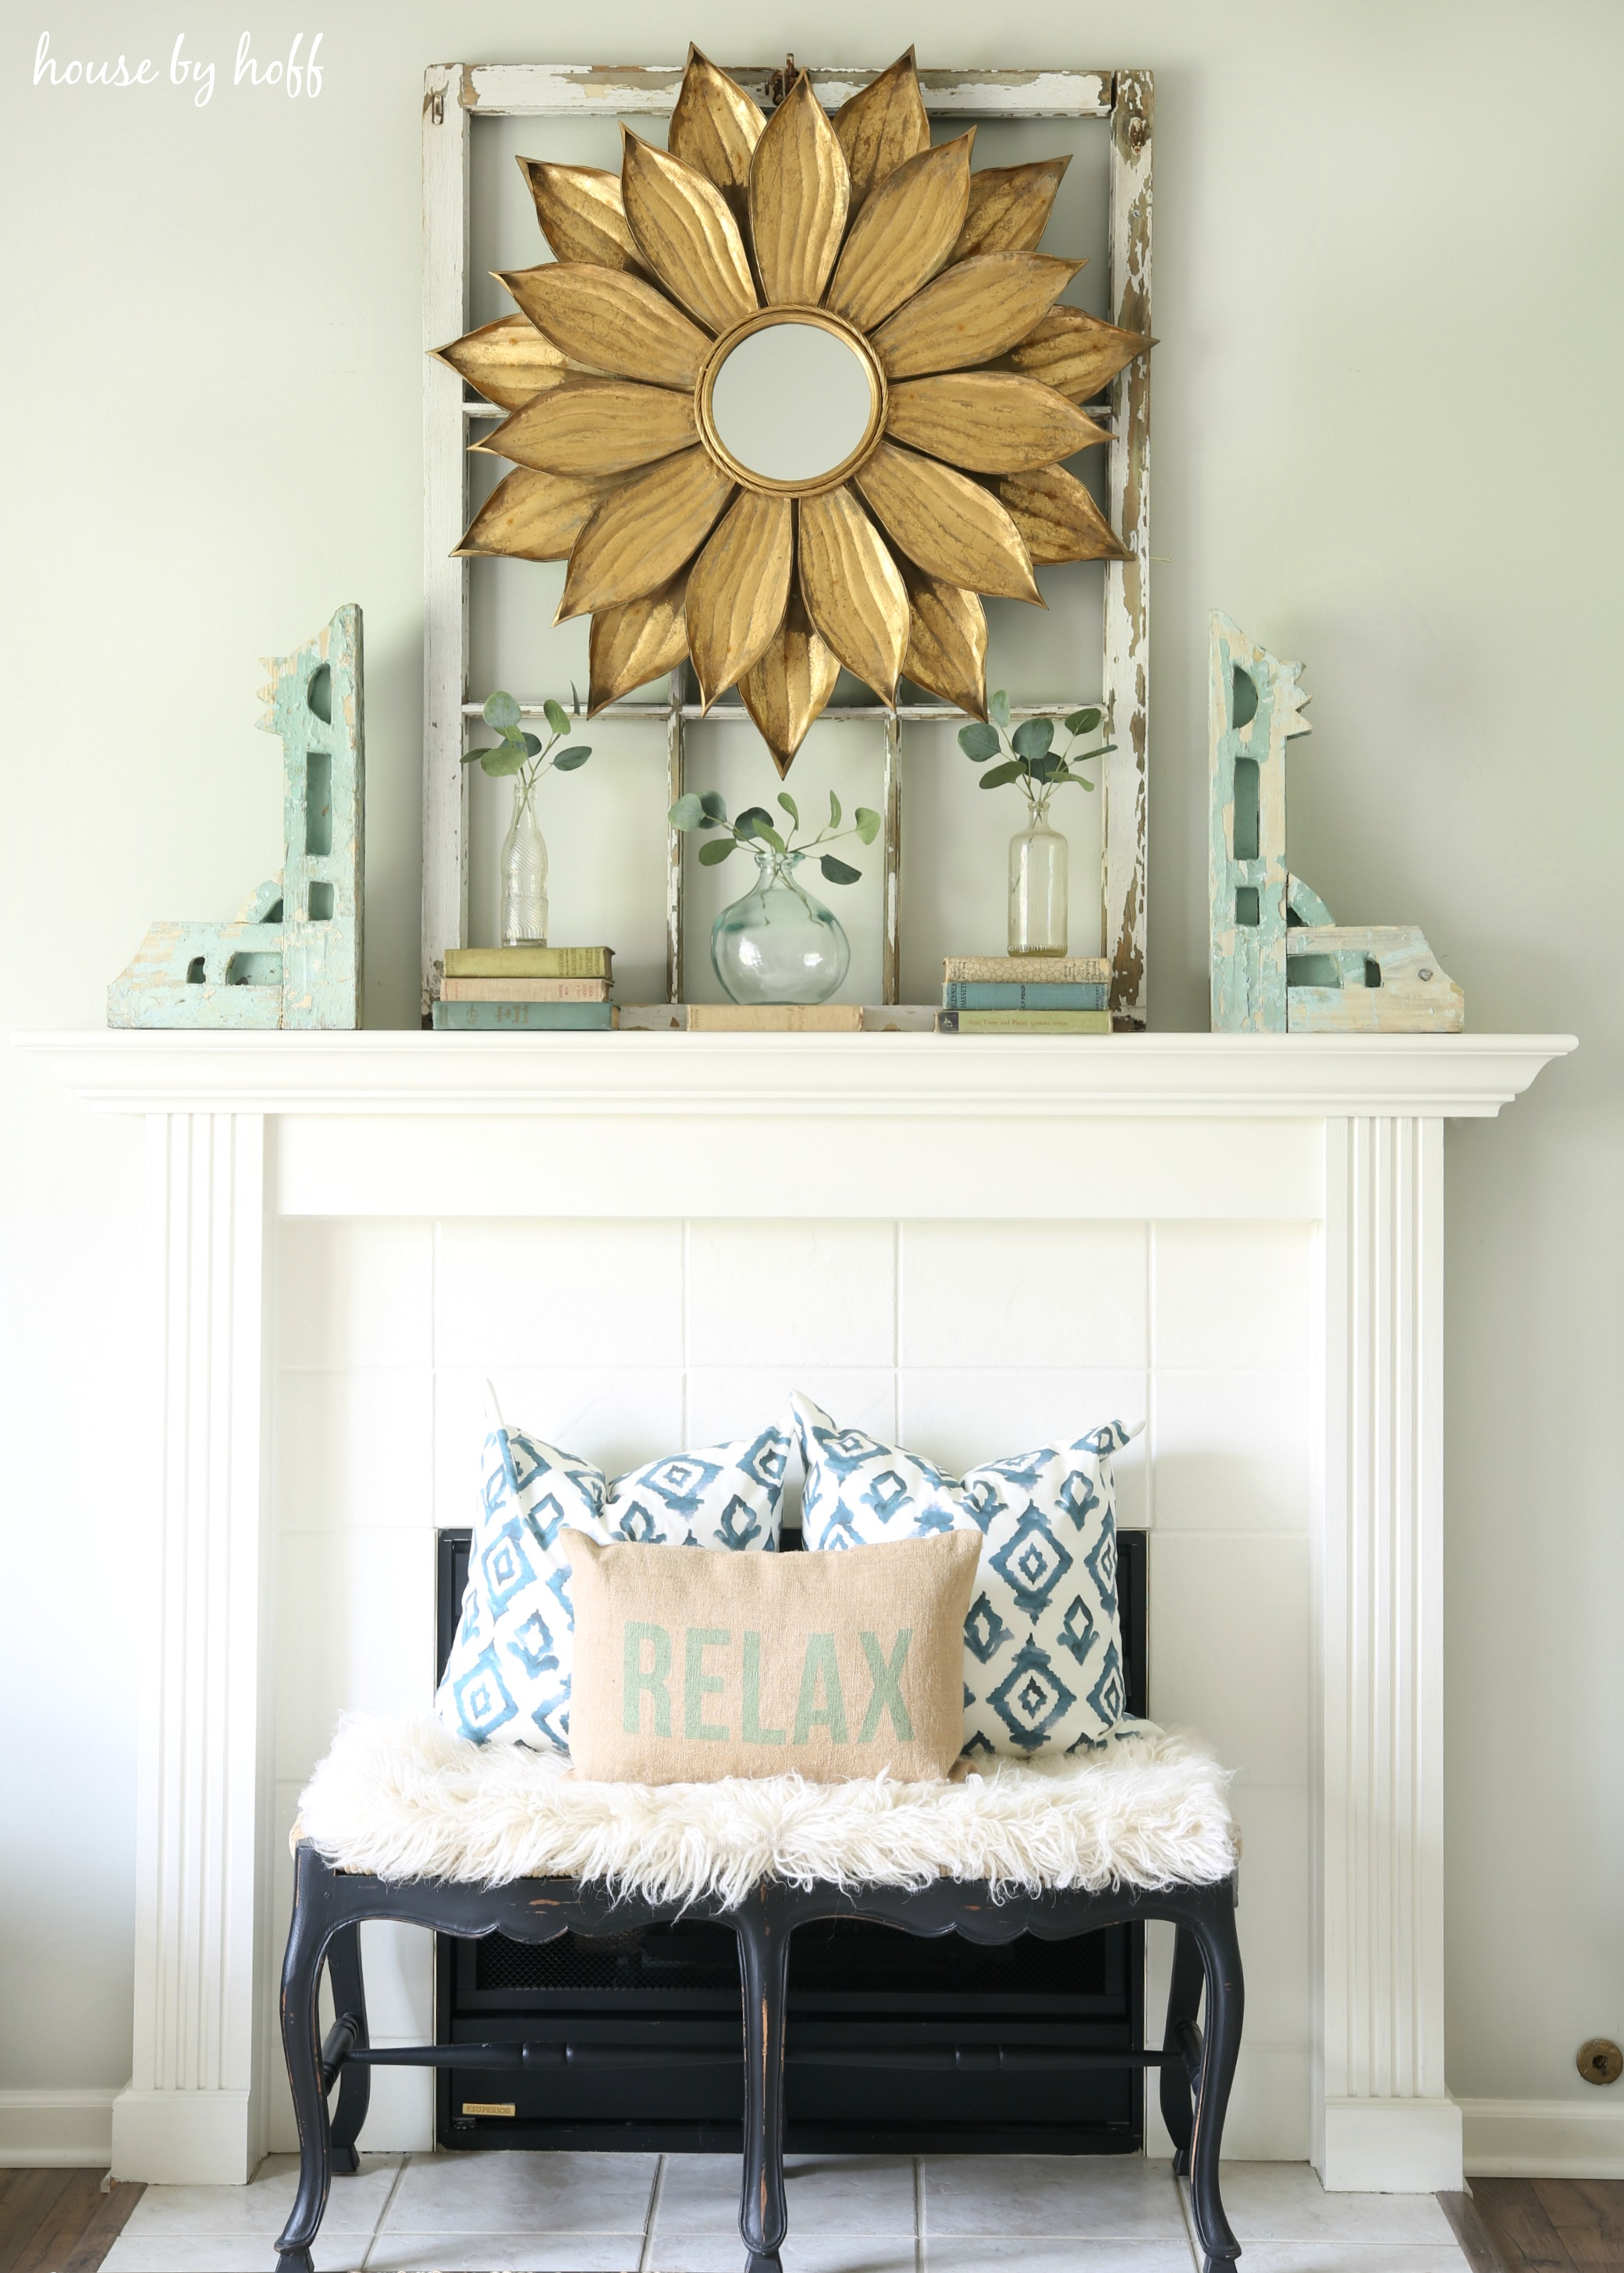 Old Wood Window As Backdrop for Decor